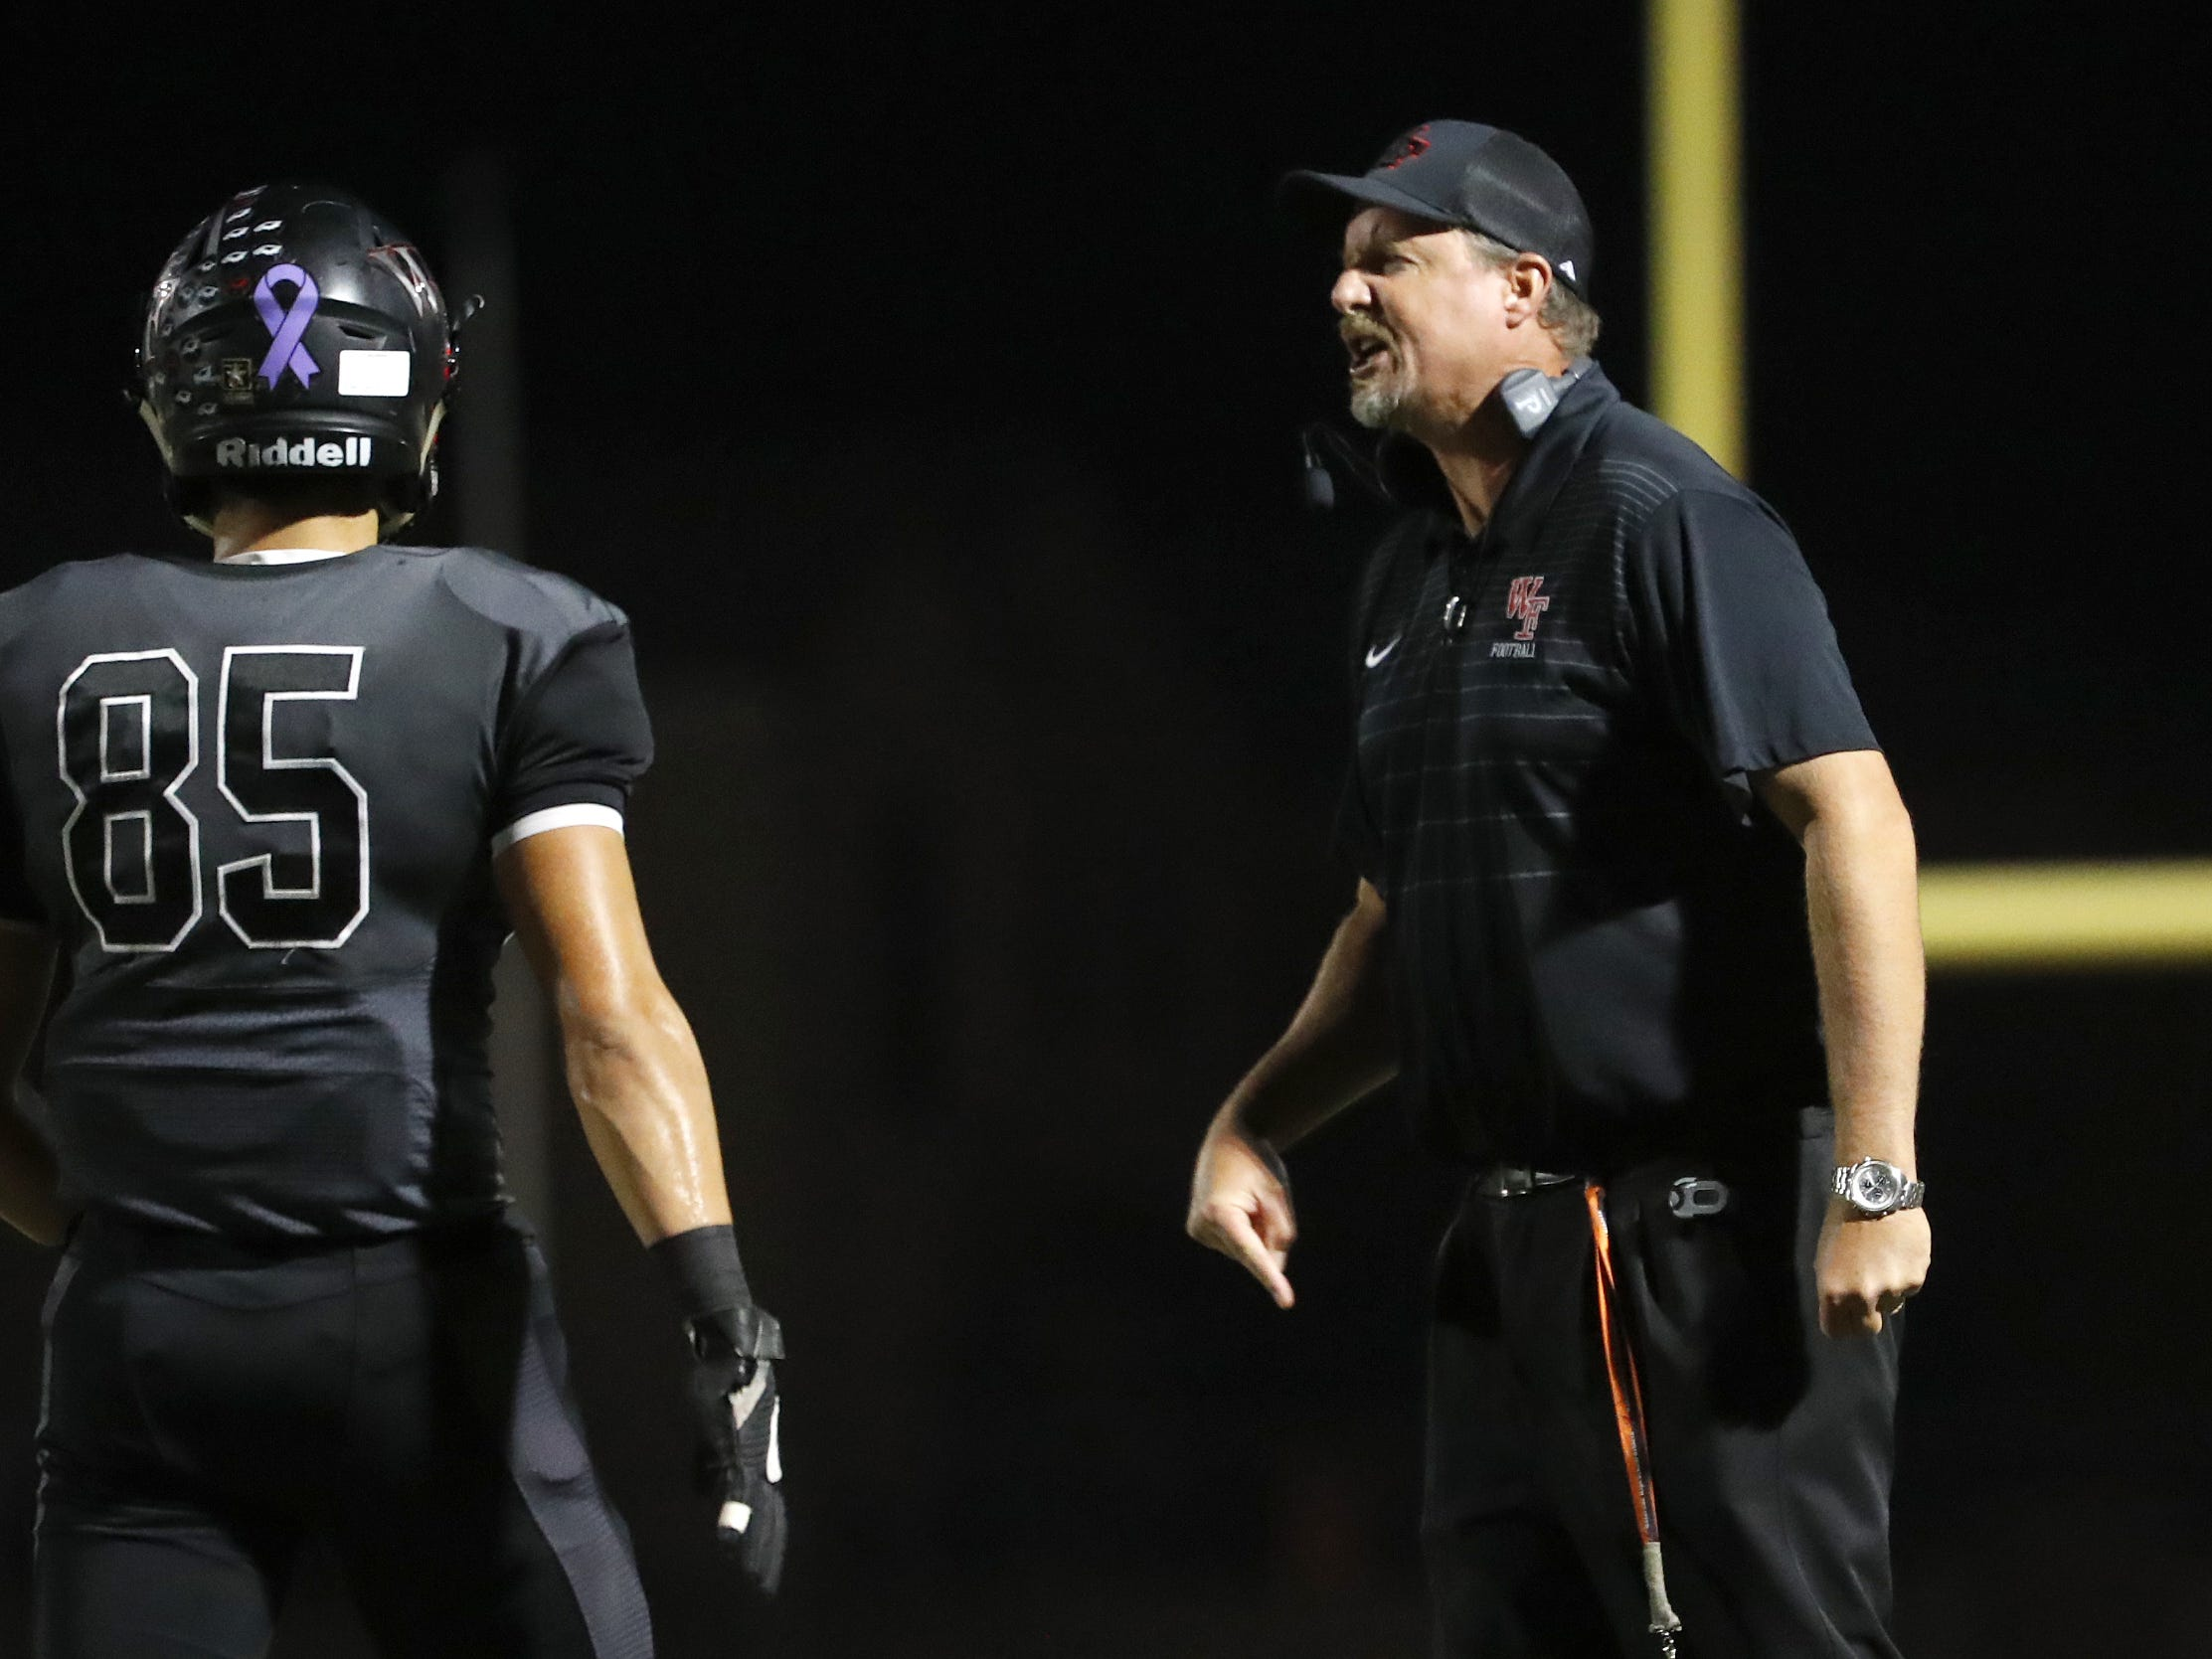 Williams Field's head coach Steve Campbell talks to his team during a timeout in the first half against Higley at Williams Field High School in Gilbert, Ariz. on October 26, 2018.